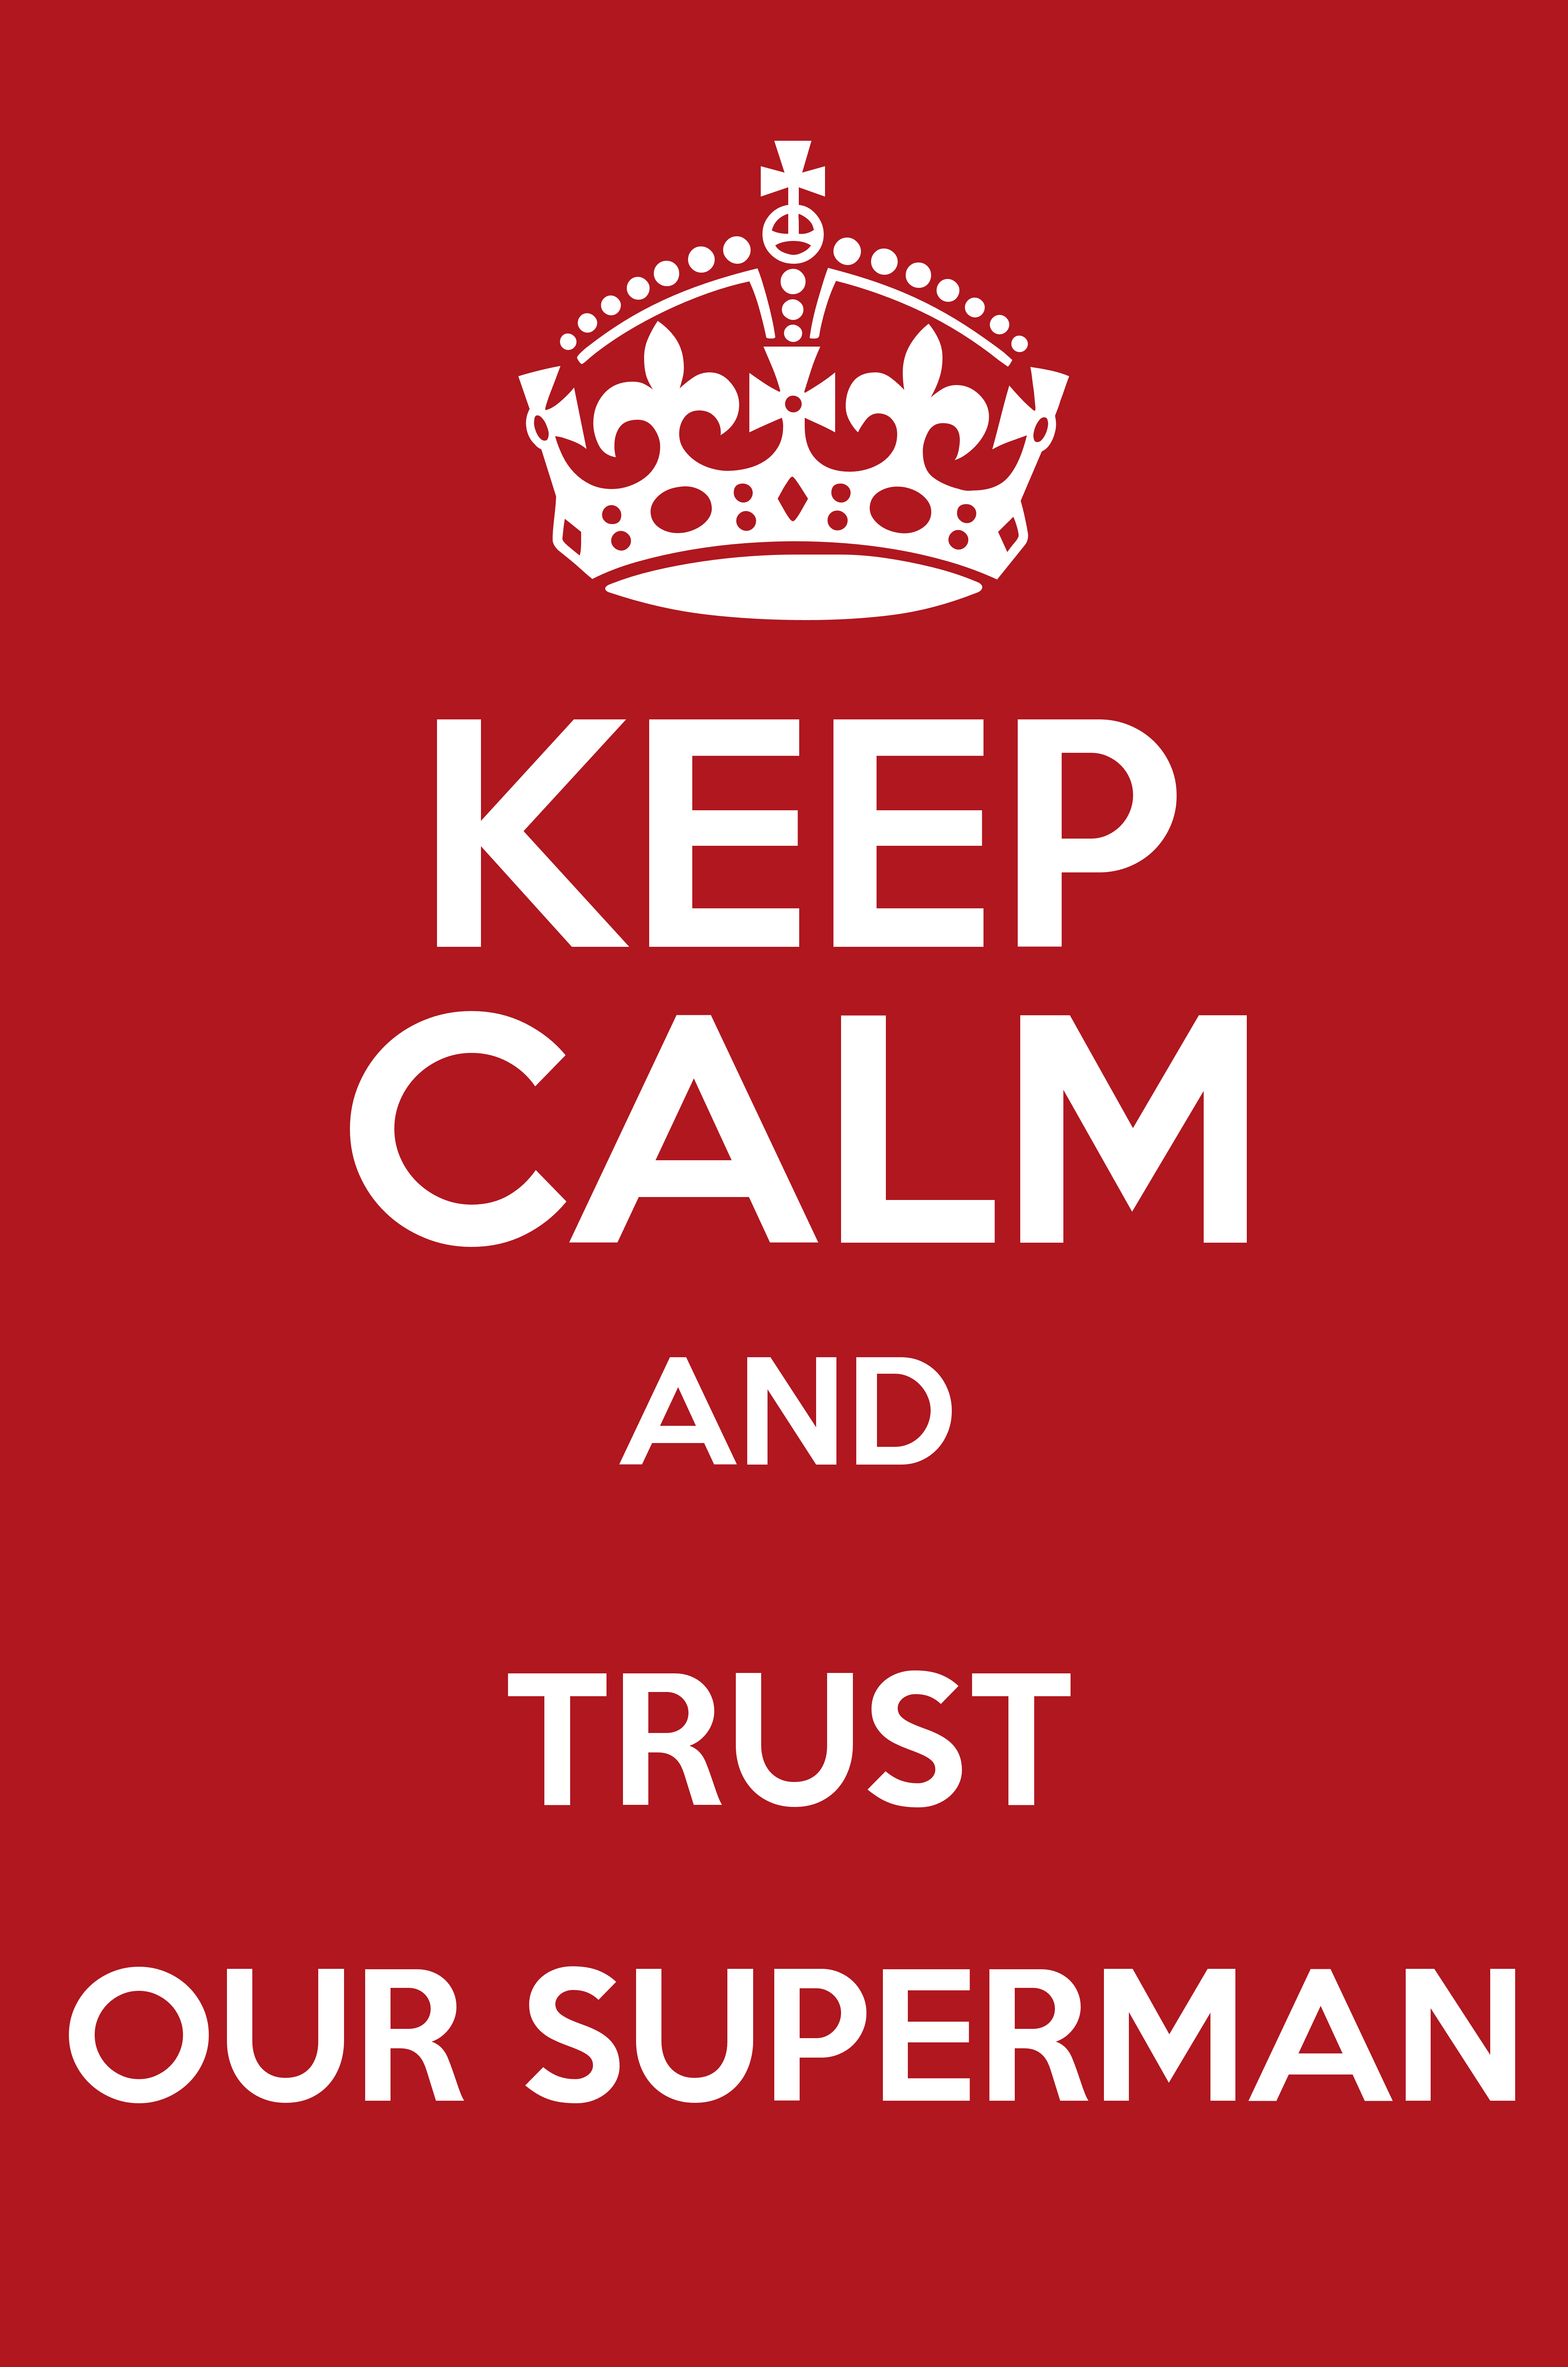 KEEP CALM AND TRUST OUR SUPERMAN - Keep Calm and Posters